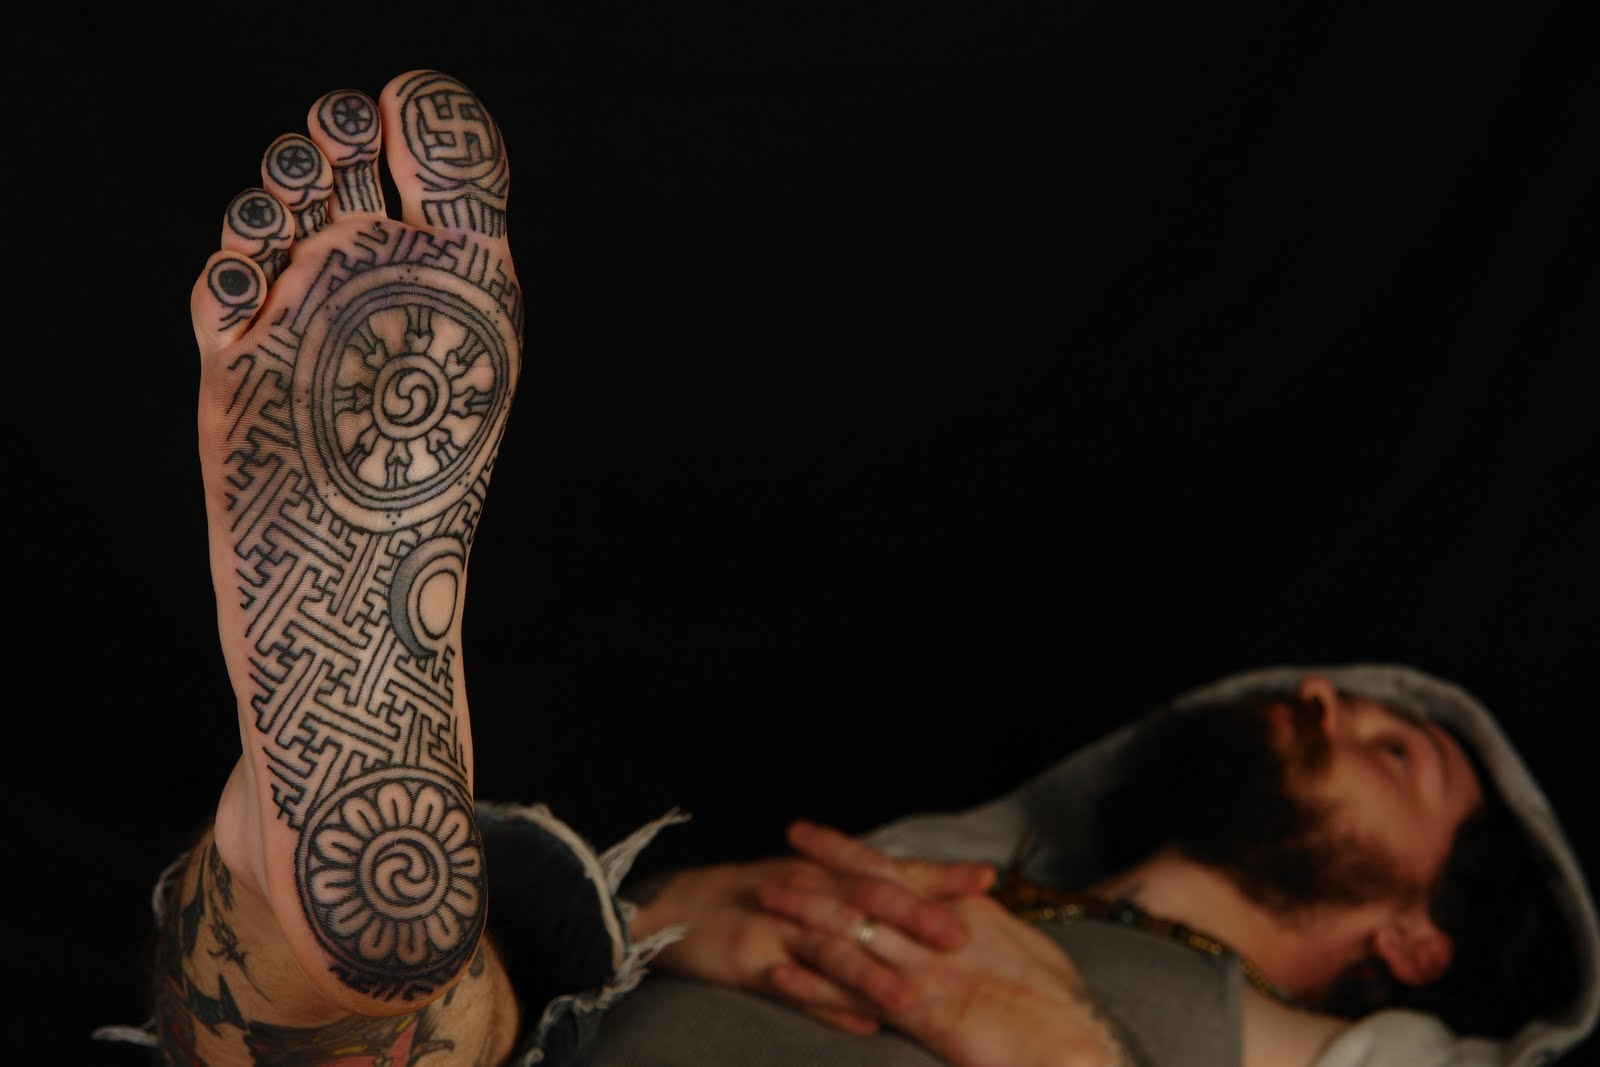 Shane tattoos buddhist tattoo design on sole of foot ryan buddhist tattoo design on sole of foot ryan traditional buddhist swastika is involved for those who keep mistaking this for a nazi symbol biocorpaavc Gallery